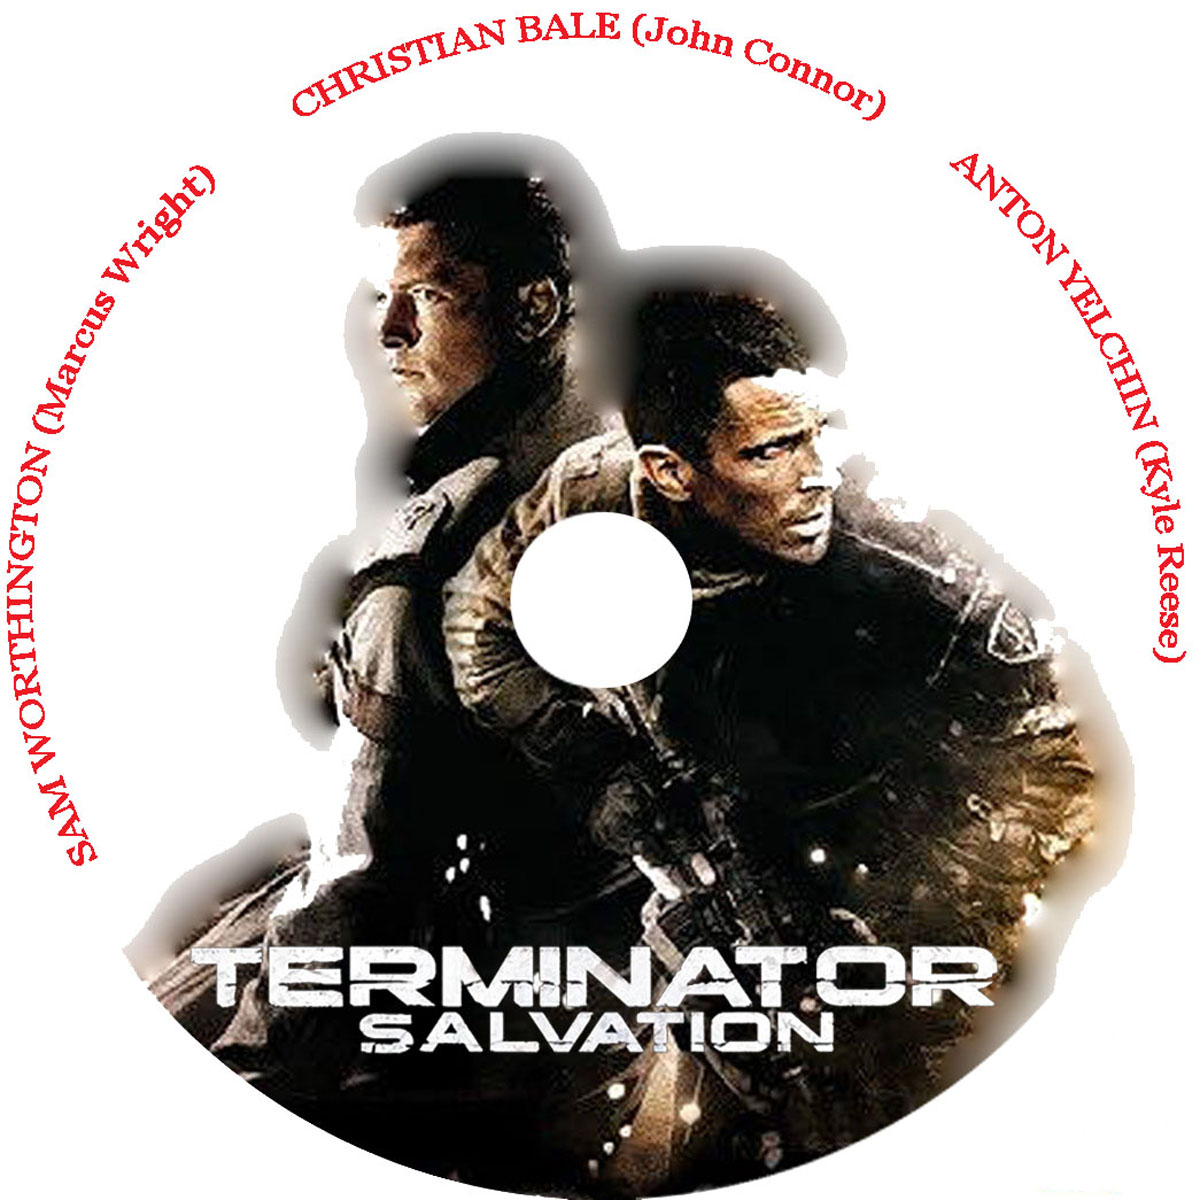 Terminator Salvation DVD Label